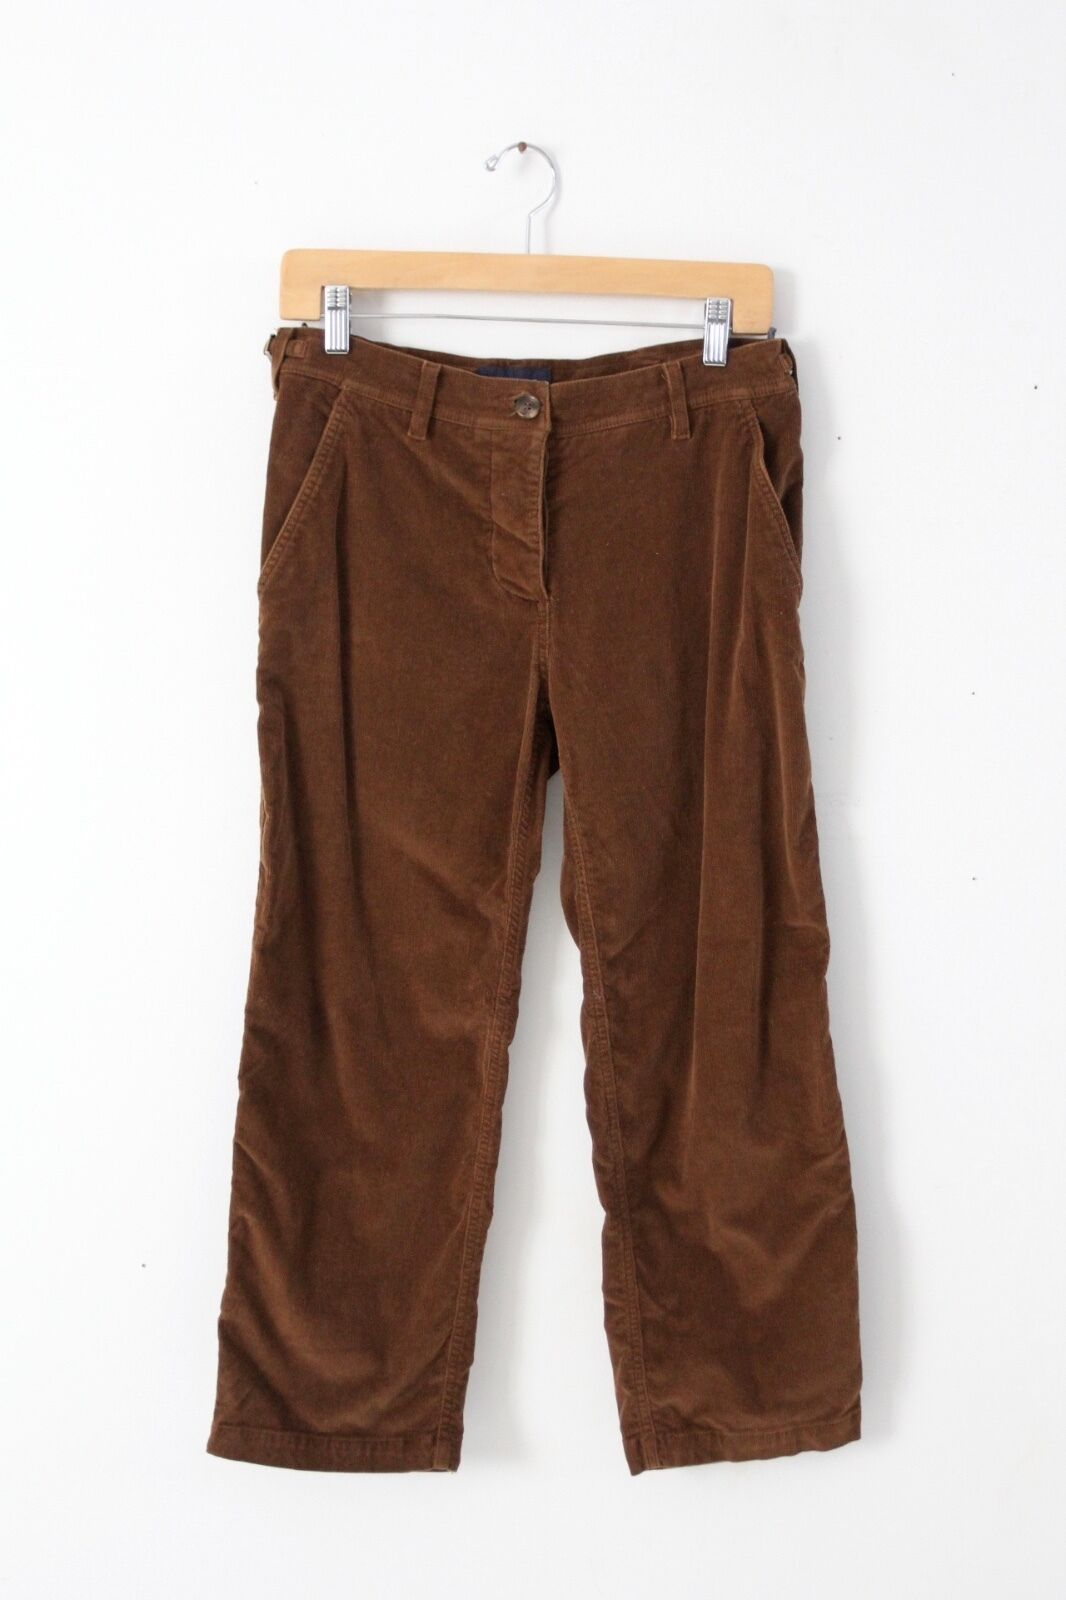 Piazza Sempione corduroy pants, cropped cord trousers brown size 44 (US 8)